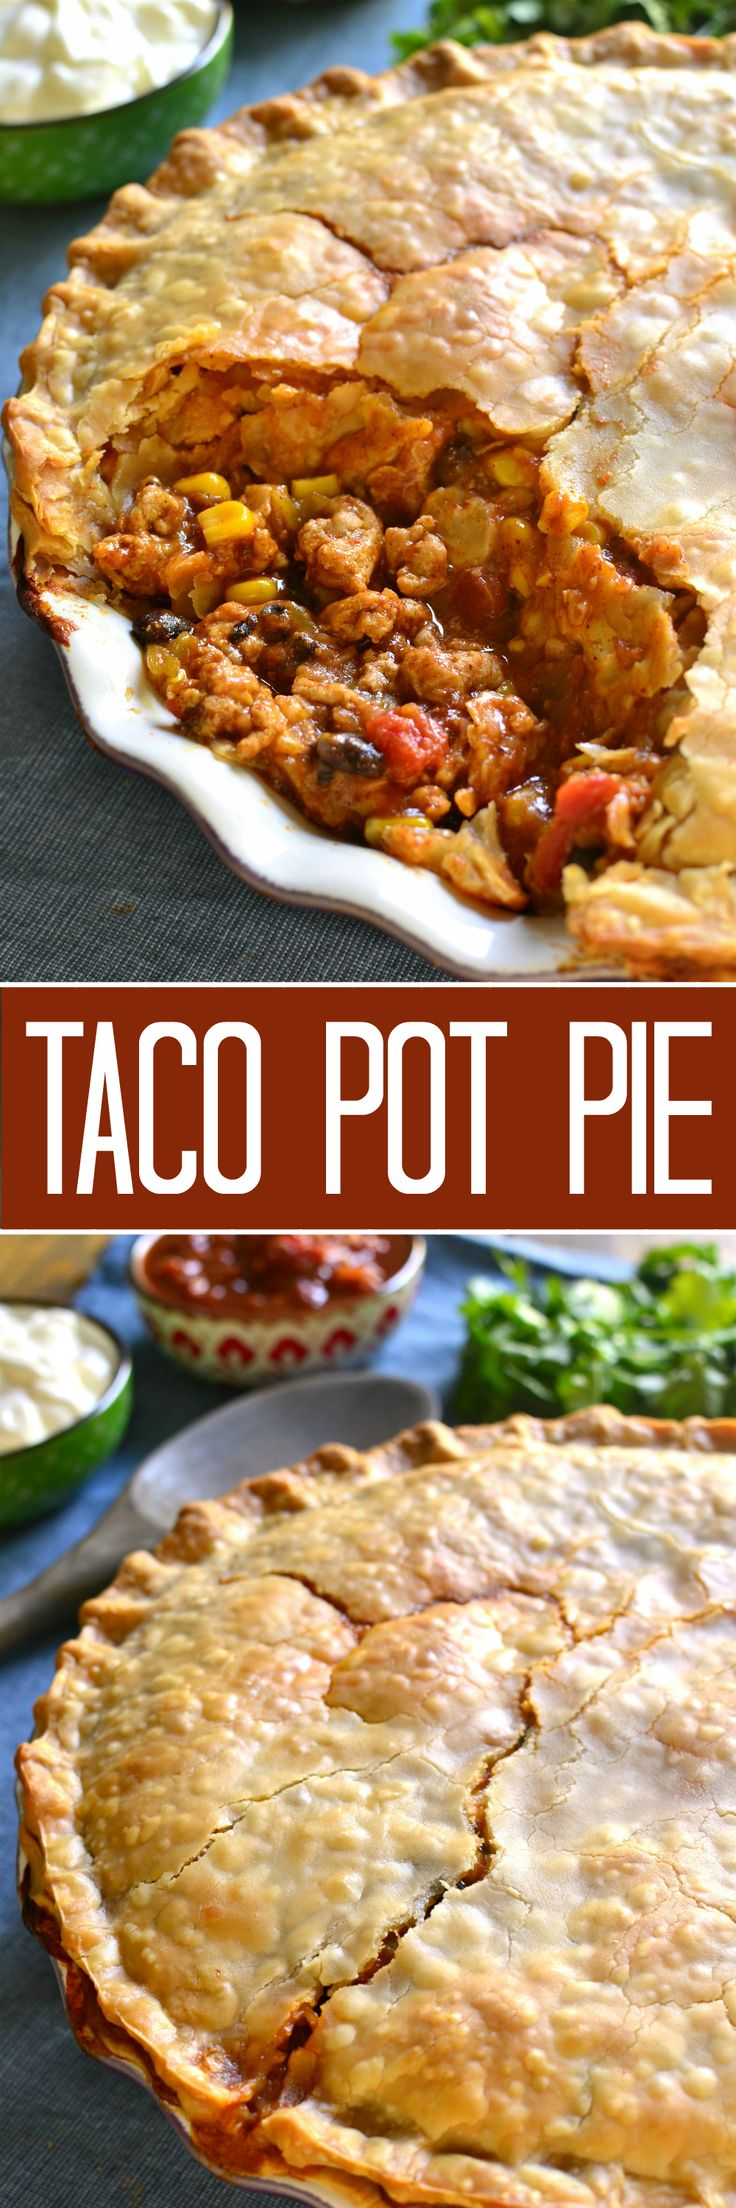 Taco Pot Pie combines two classics in one delicious dish! All the taco flavors you love in a flaky, buttery crust that's sure to become a new family favorite! @picknsave #mypicknsave #ad